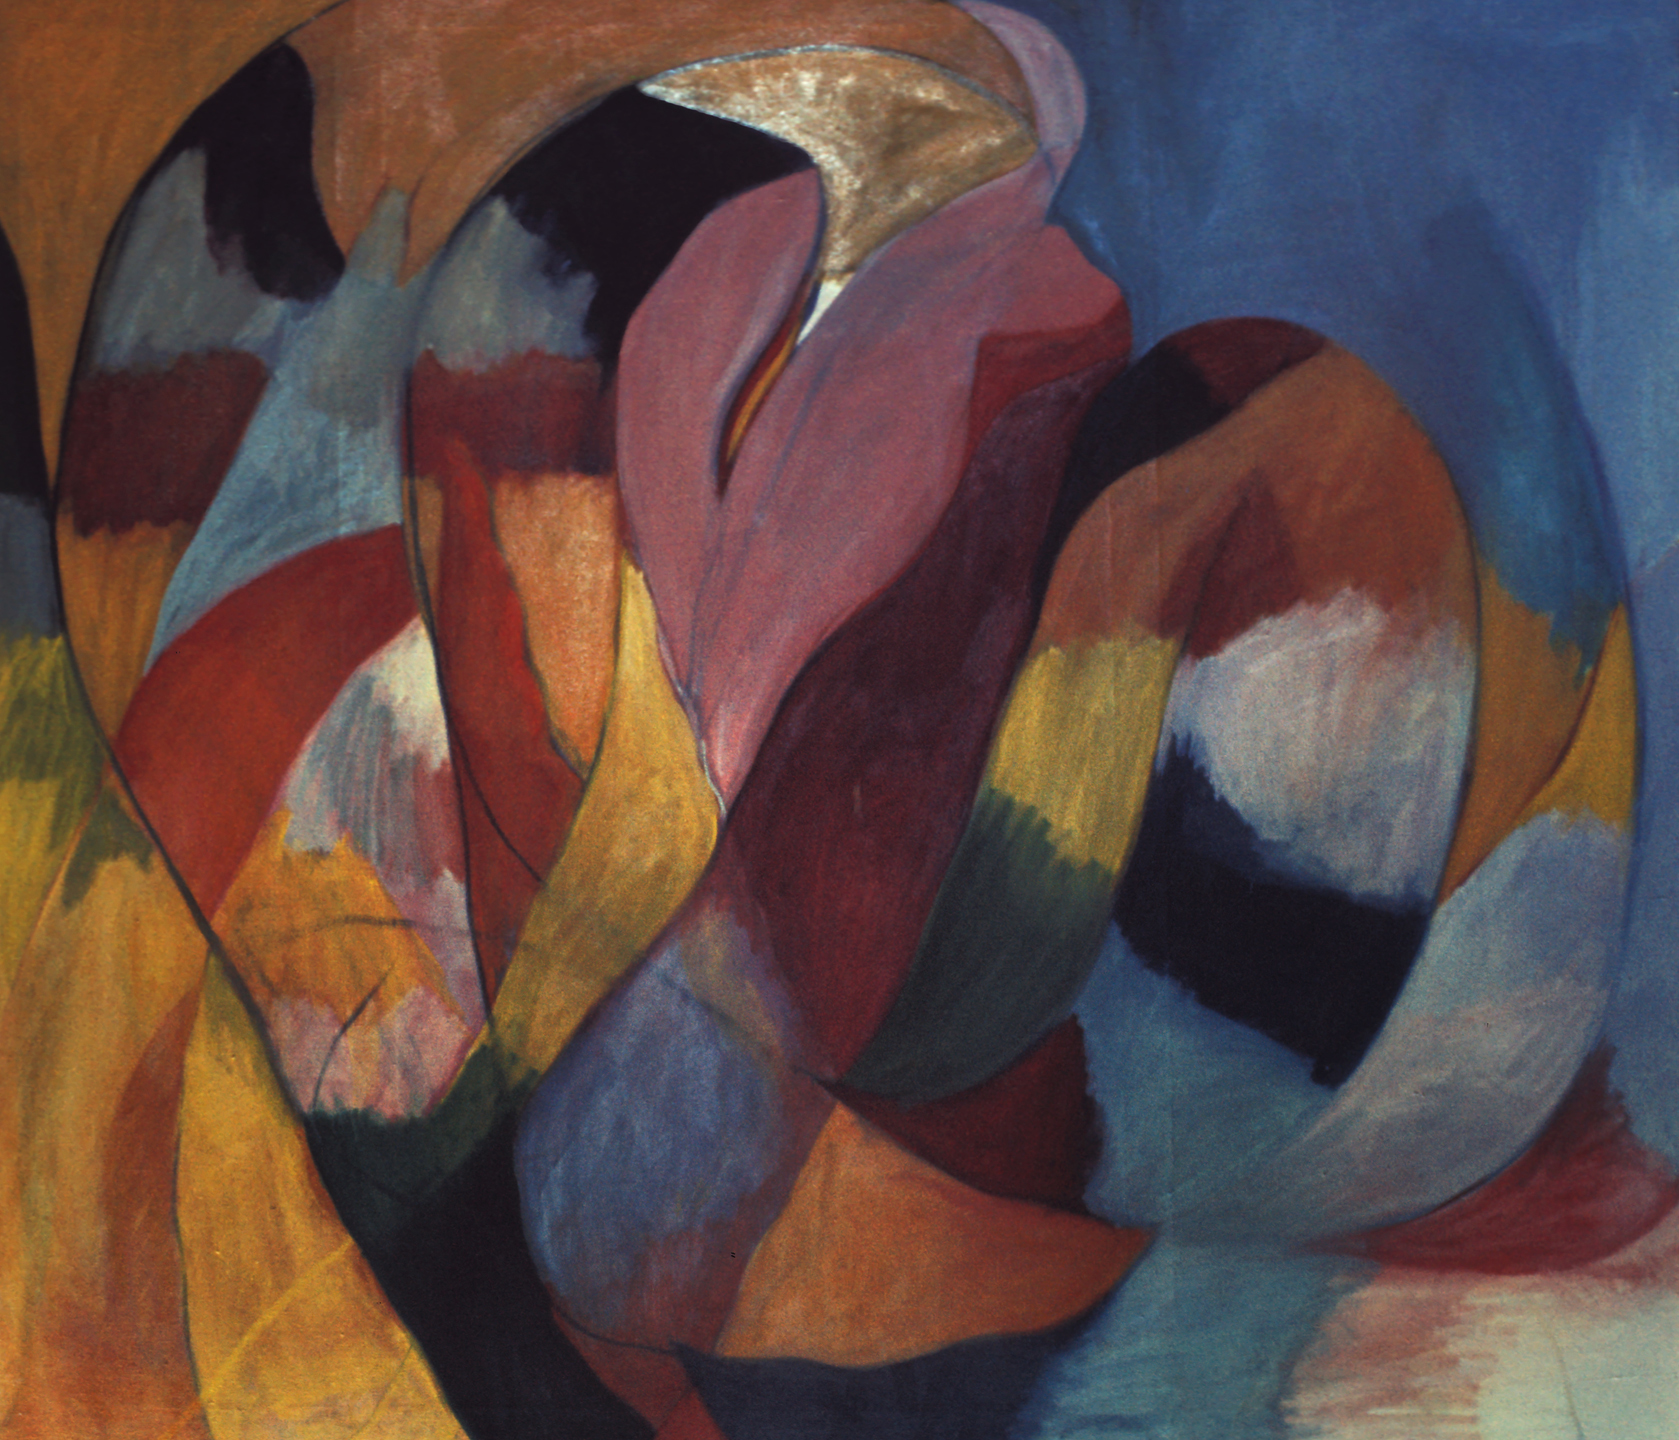 Untitled, 1969, oil on canvas